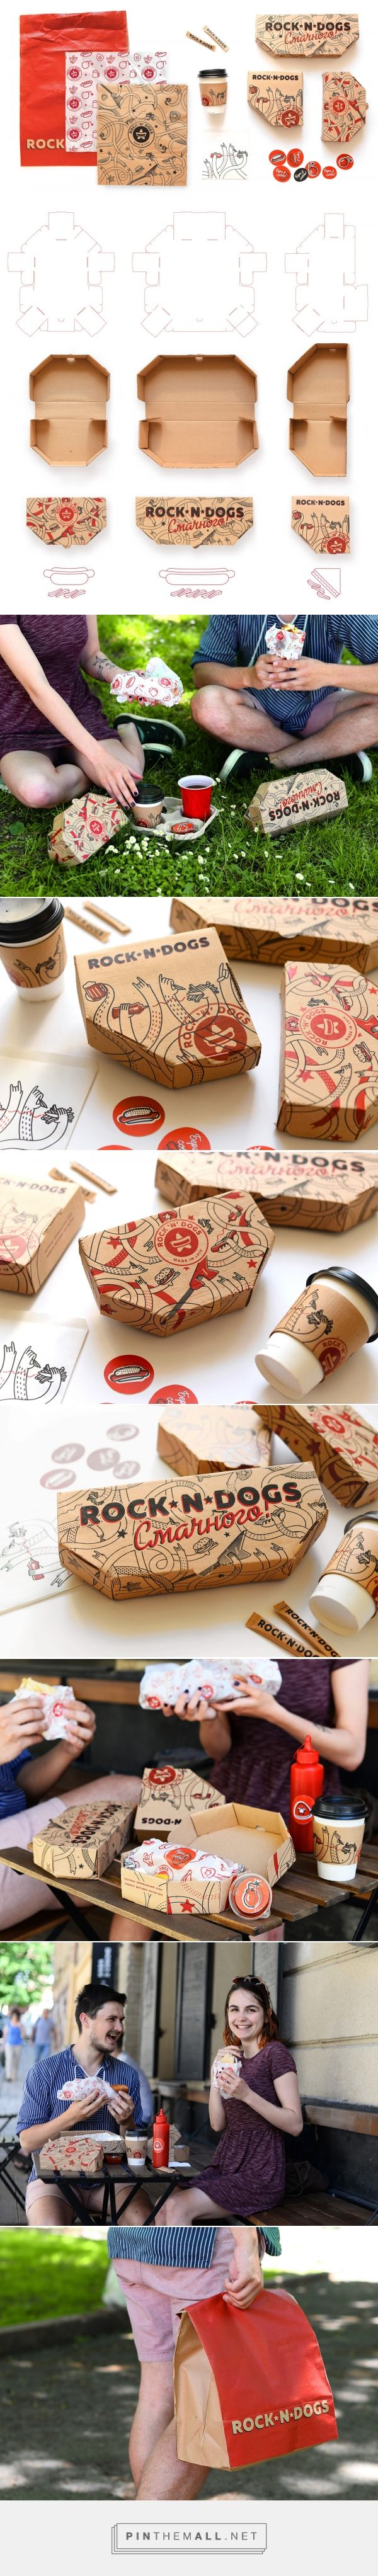 ROCK'N'DOGS - Takeaway Food Packaging (Student Project) - Packaging of the World - Creative Package Design Gallery - http://www.packagingoftheworld.com/2017/07/rockndogs-takeaway-food-packaging.html